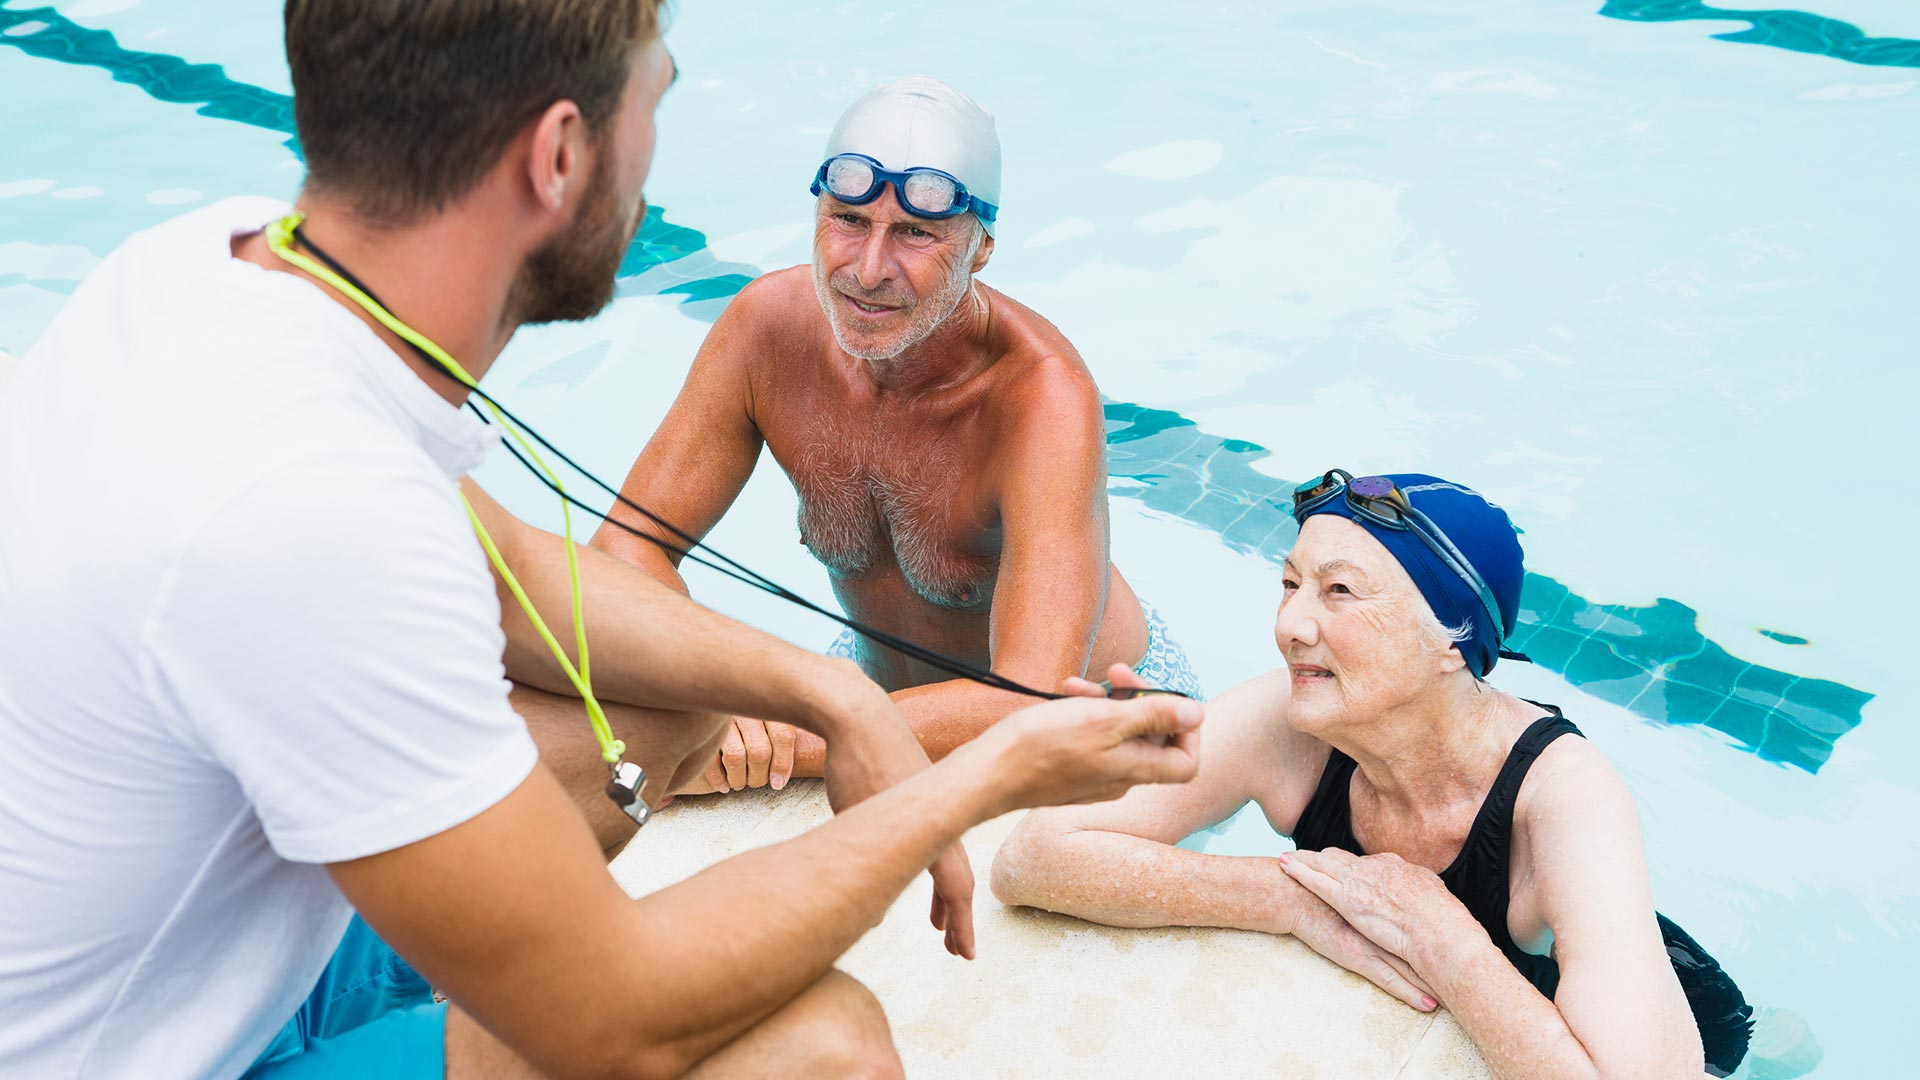 Swimming: Jump in with These Exercise Tips